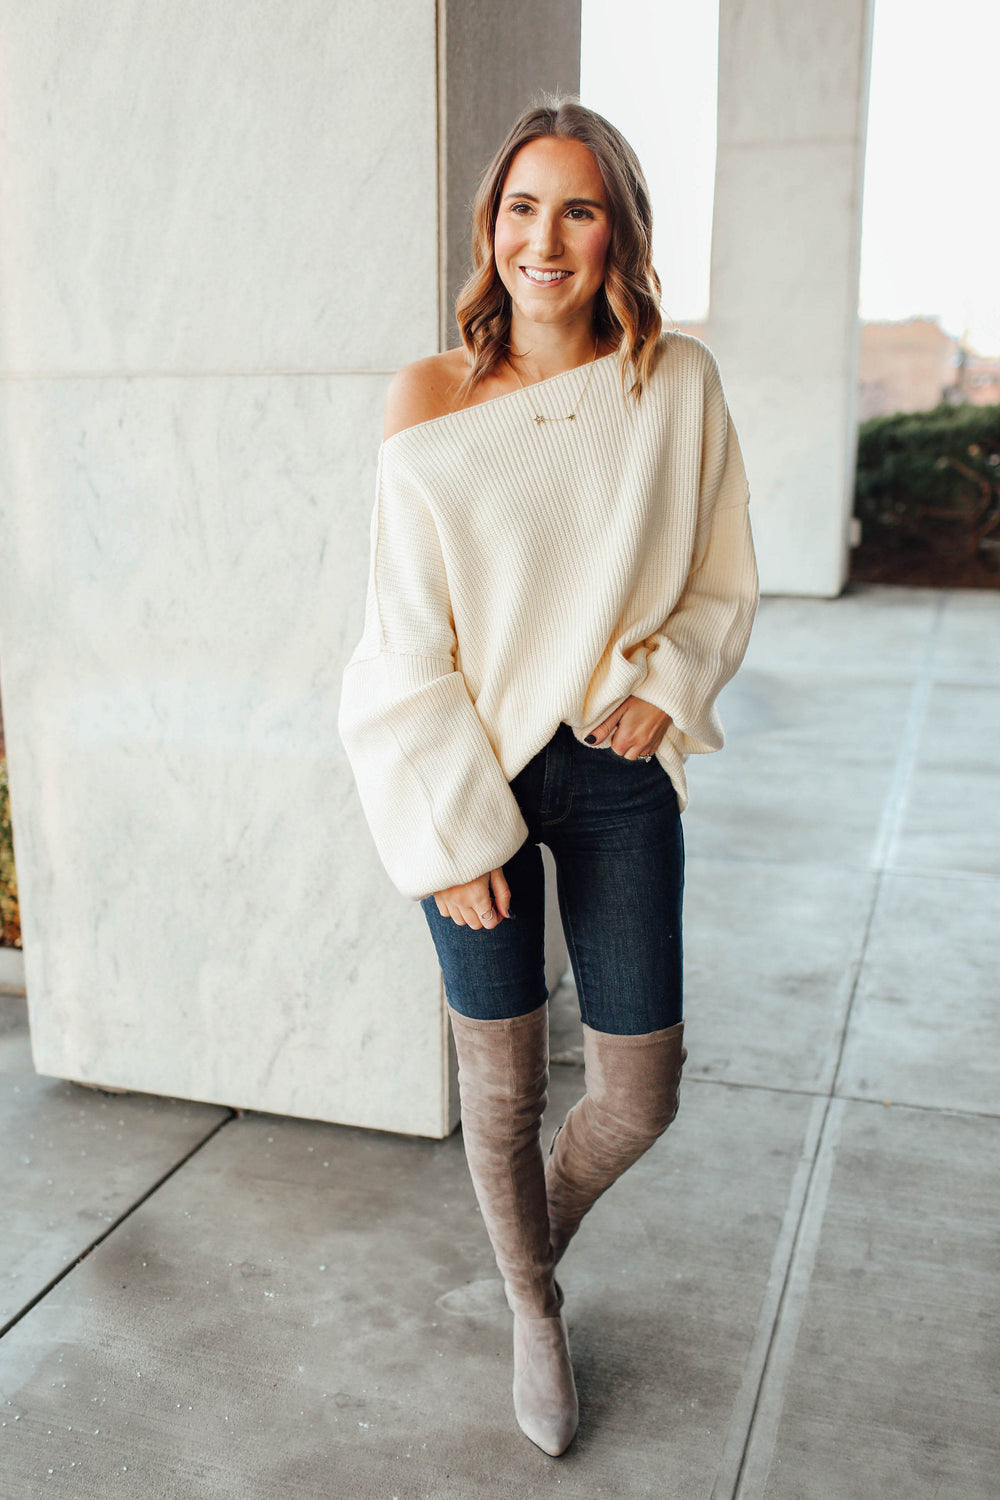 On My List White Oversized Sweater Inspired By Ashley from Twenties Girl Style